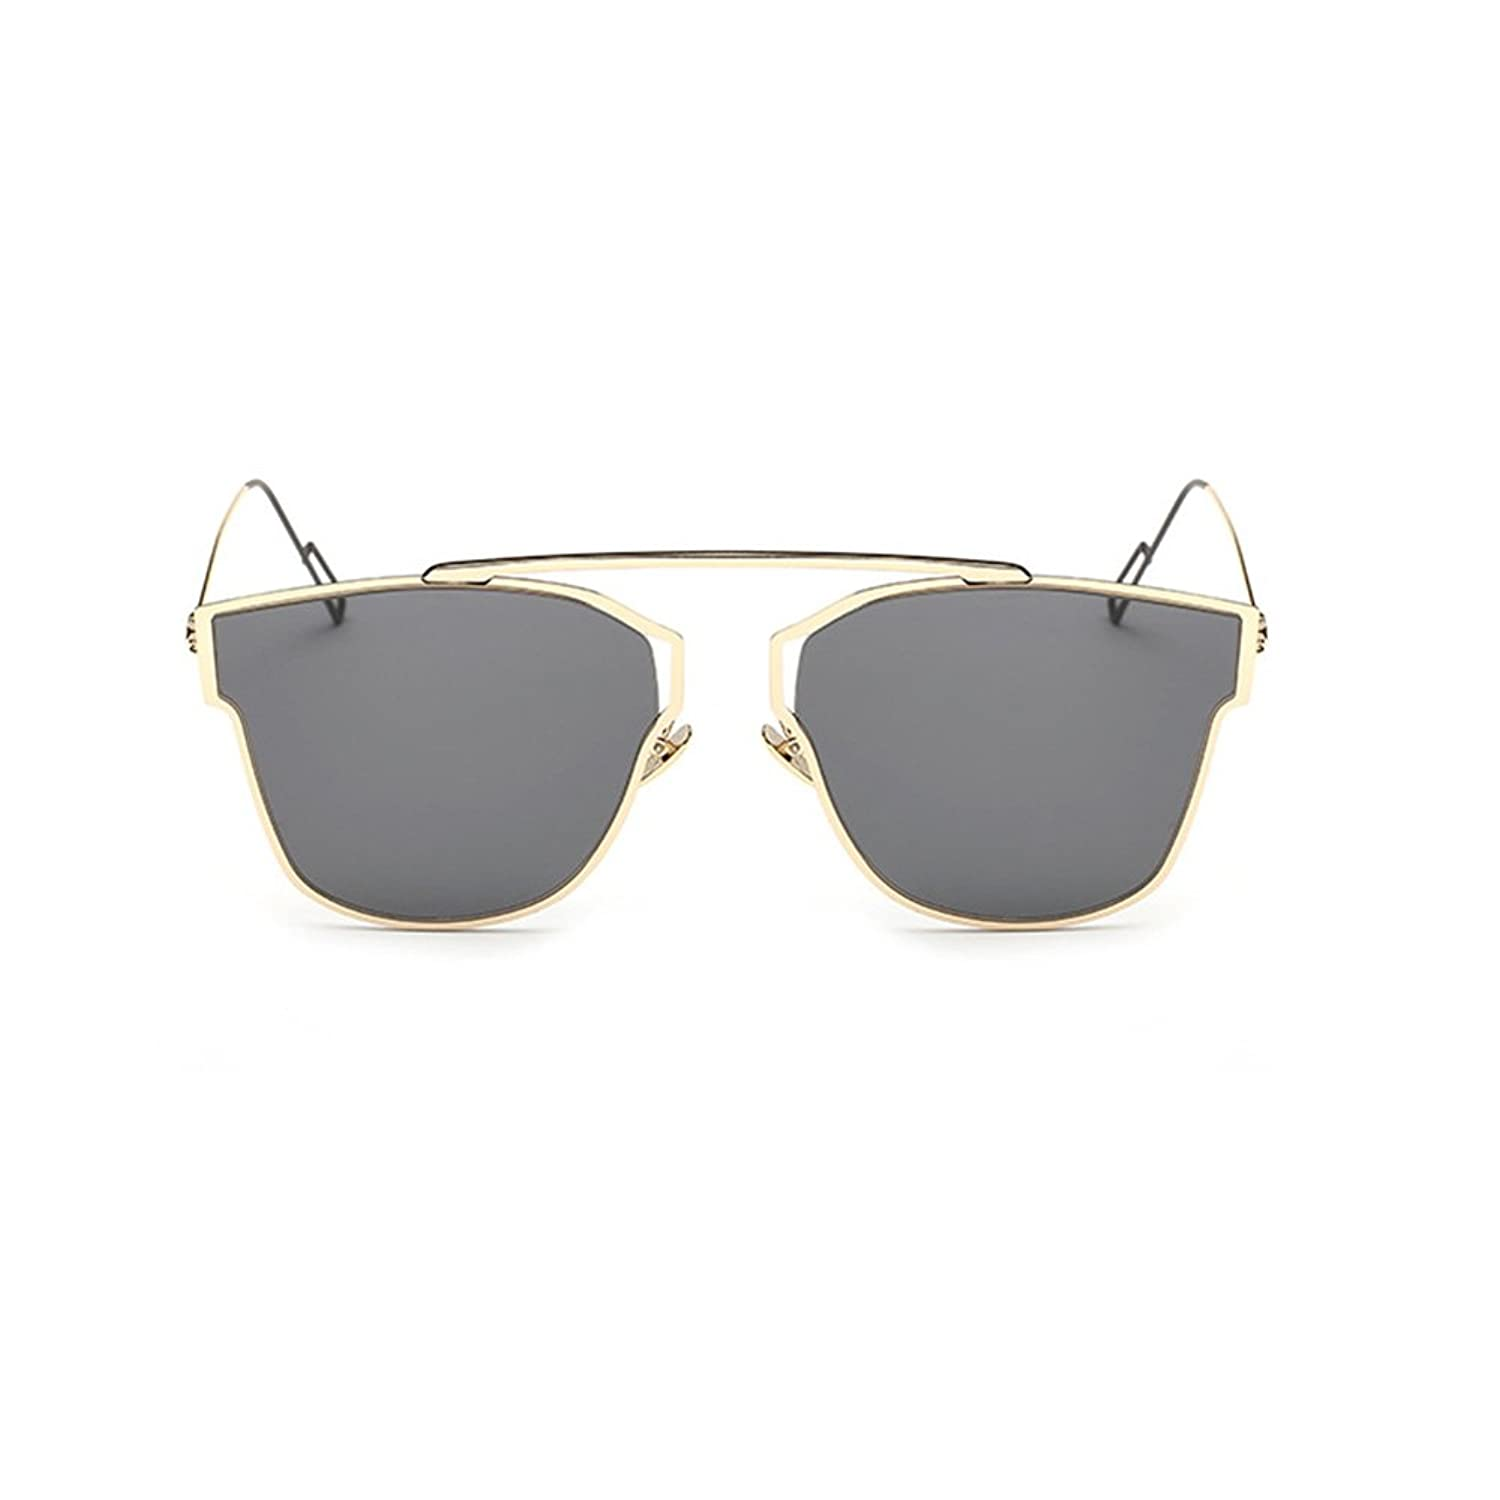 Hanerdun Chopper Frame Retro Rimless Fashion Sunglasses For Women UV400